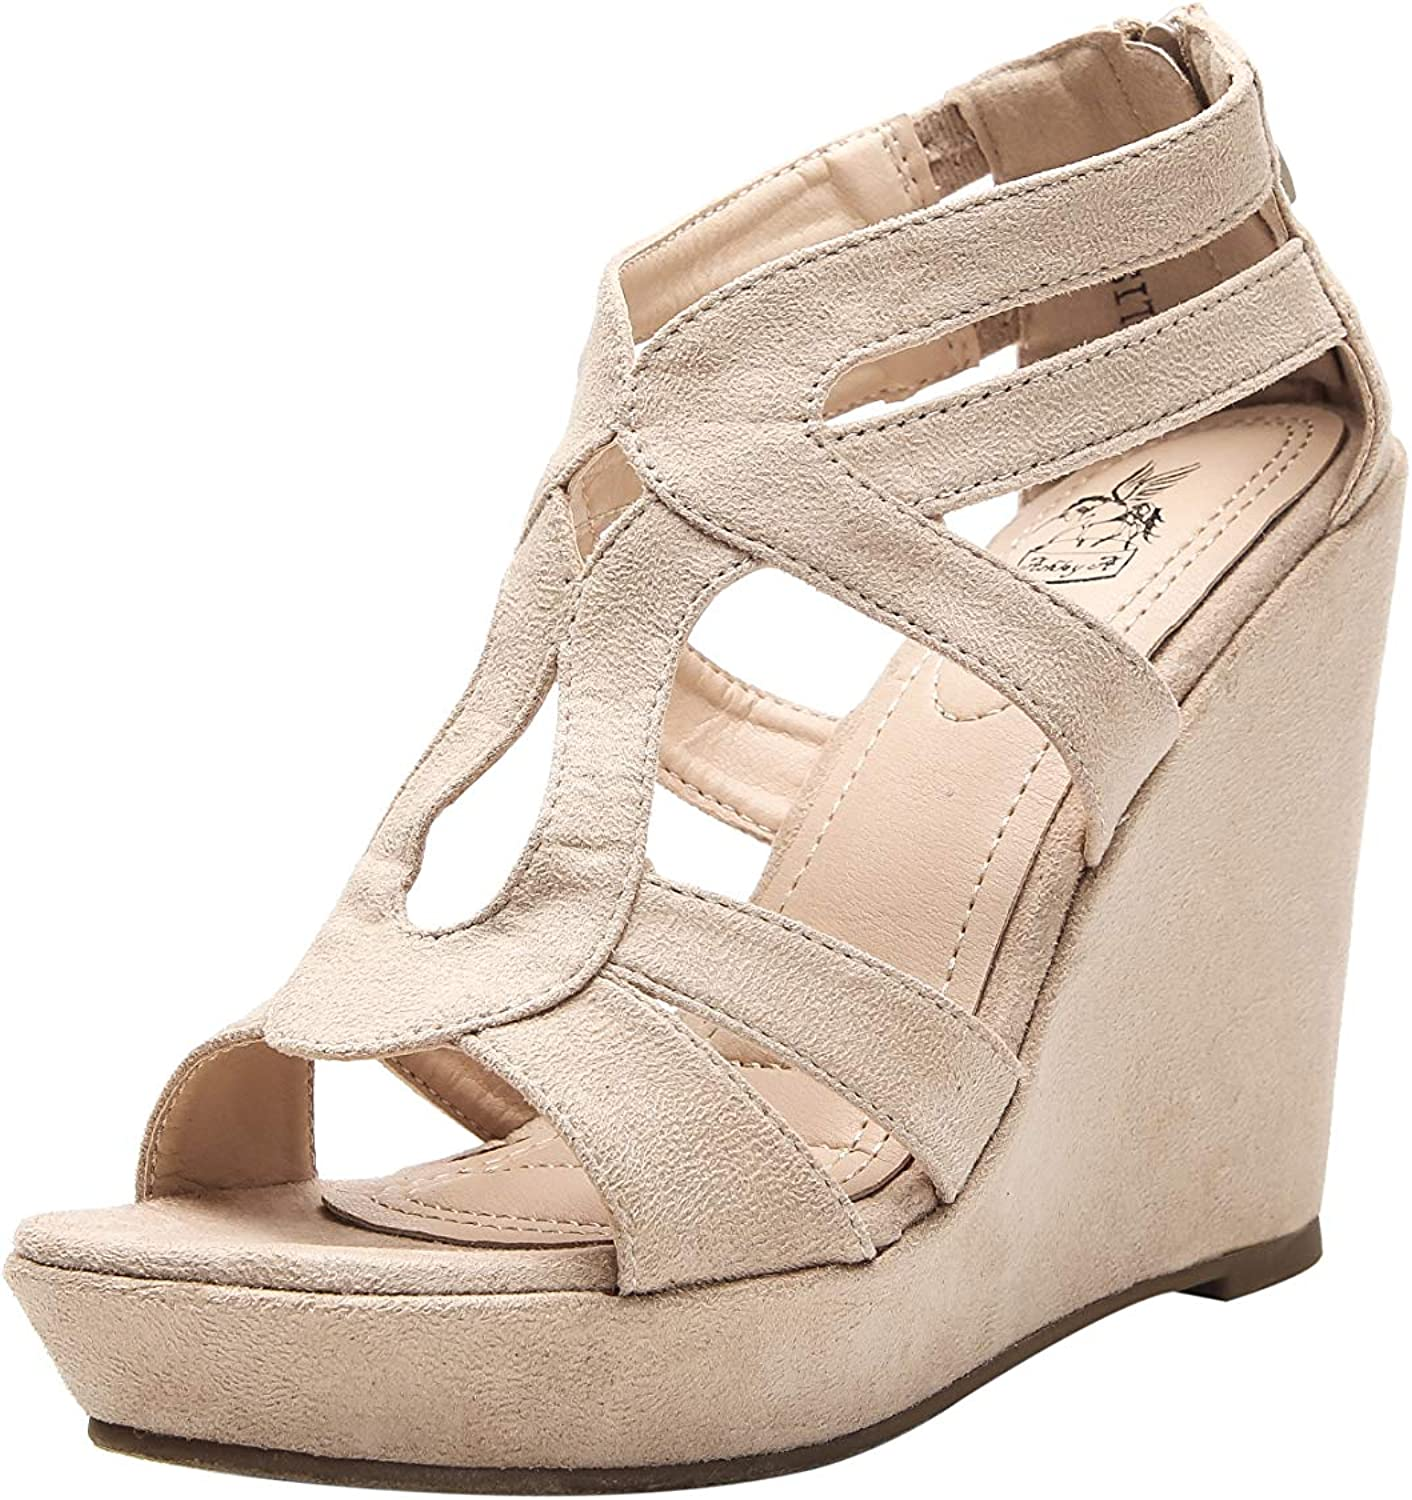 Ashley A Product A-LISA40 Zippered Credence Strappy Toe Wedges Open Heel Platform